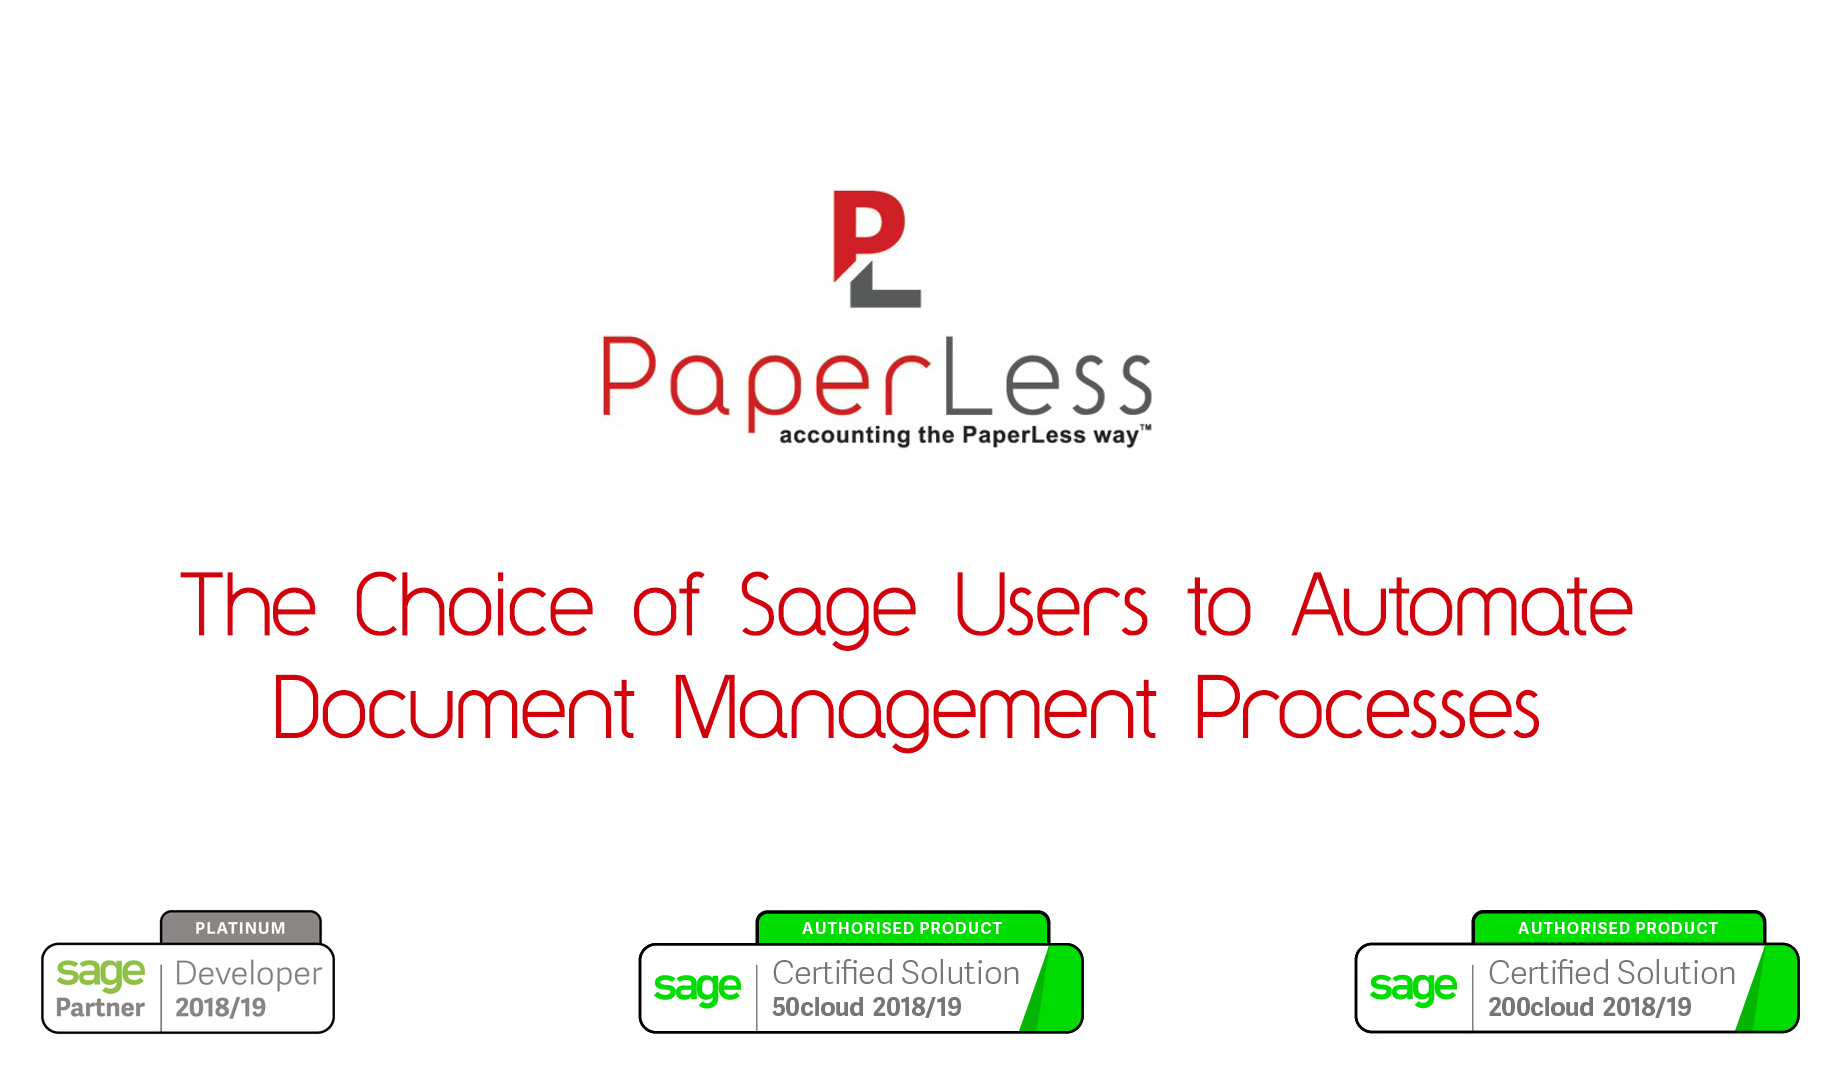 Sage Certified Document Management Software is the top choice of Sage users to automate invoice processing routines.